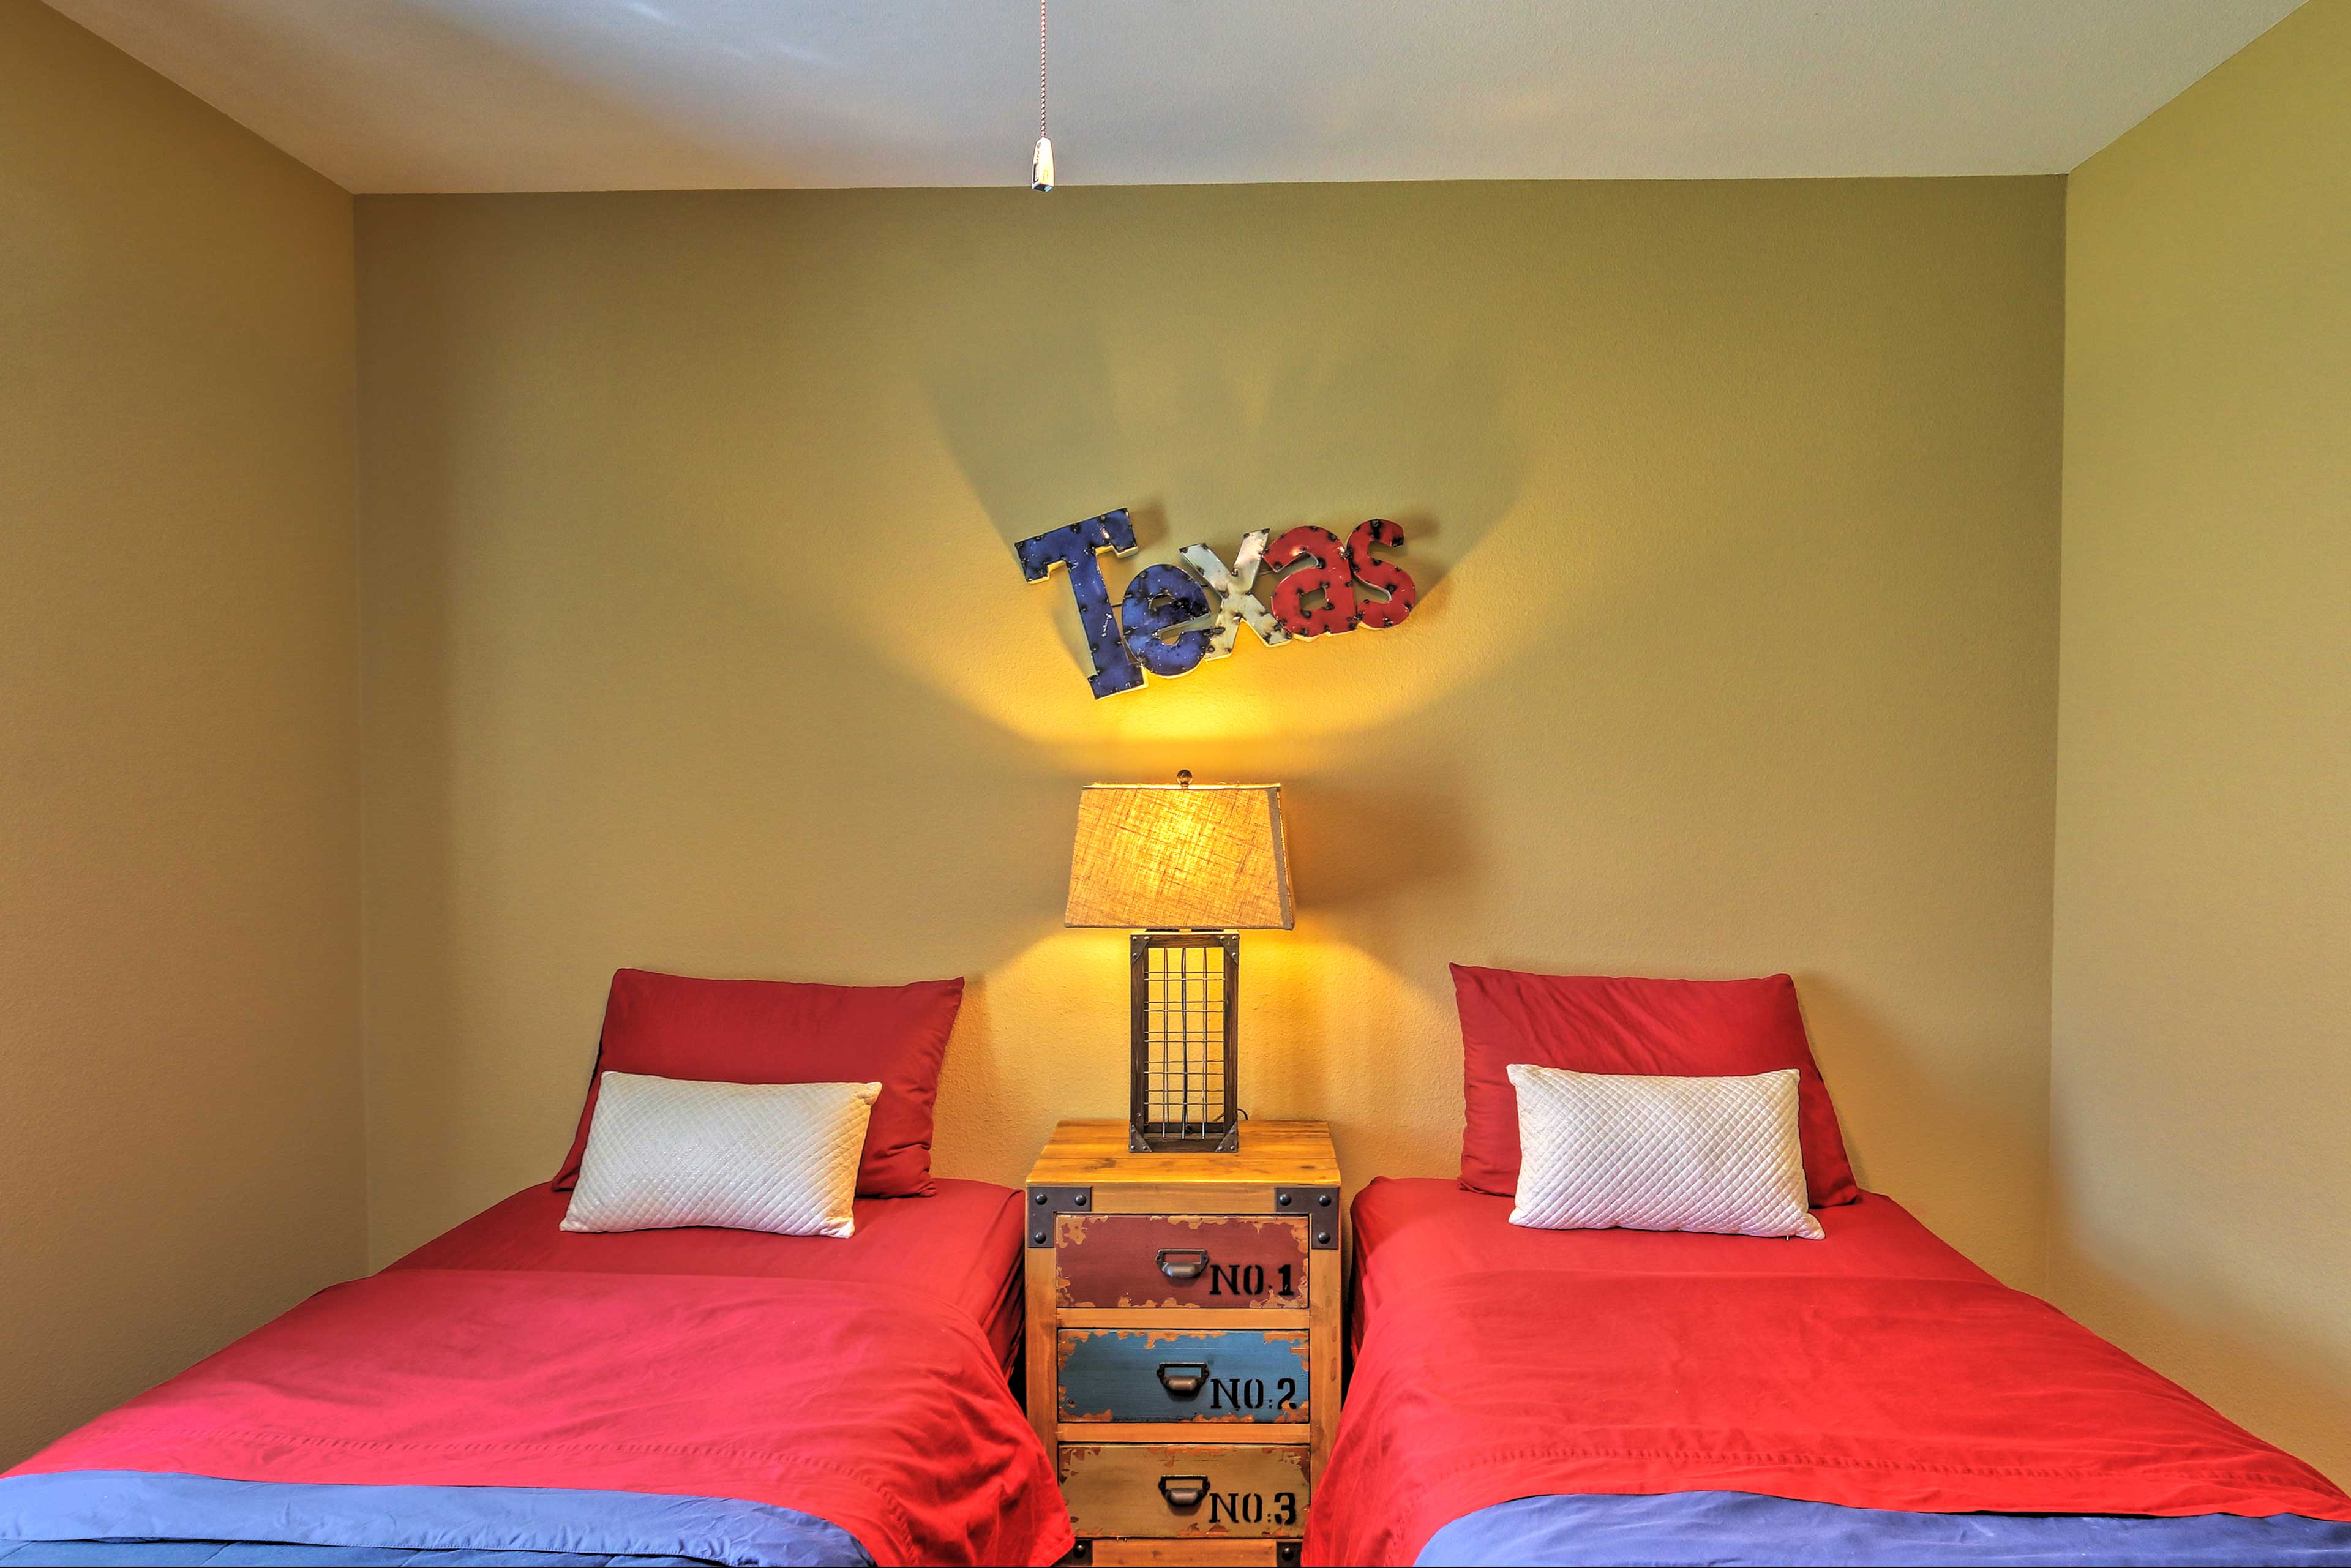 Drift off to dreamland in the fourth bedroom, which features 2 twin beds.